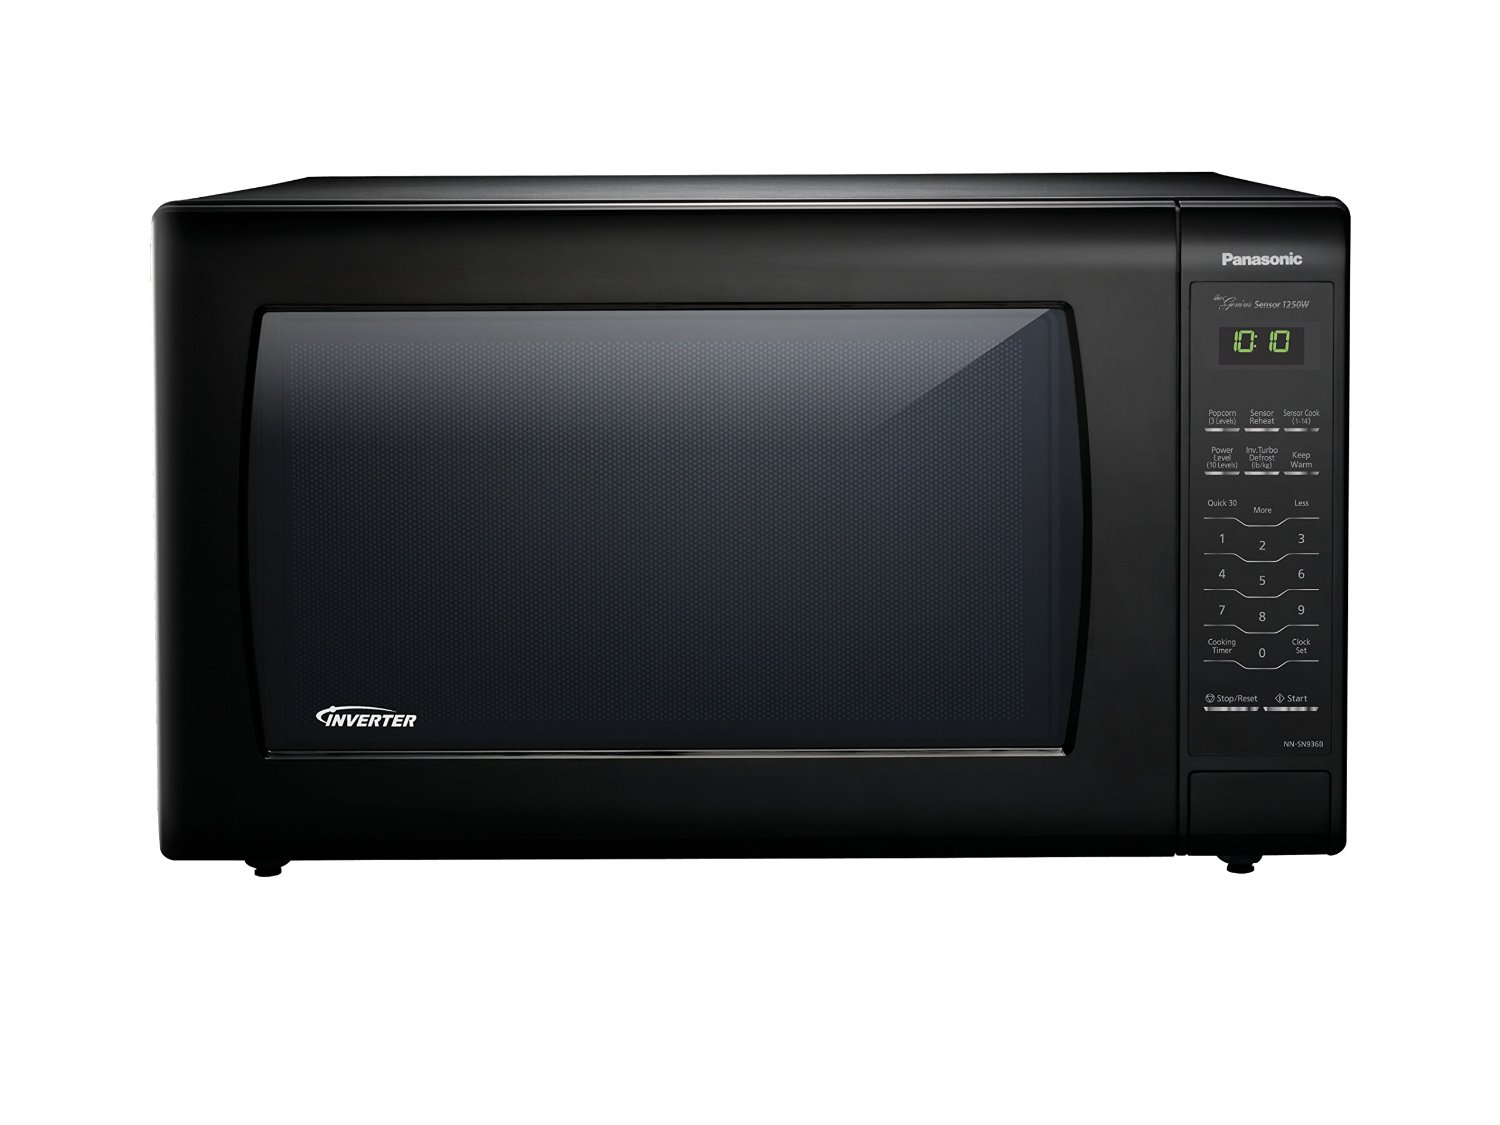 2.2 cu. ft., 1250w Countertop Microwave Oven with Inverter Technology™, Black